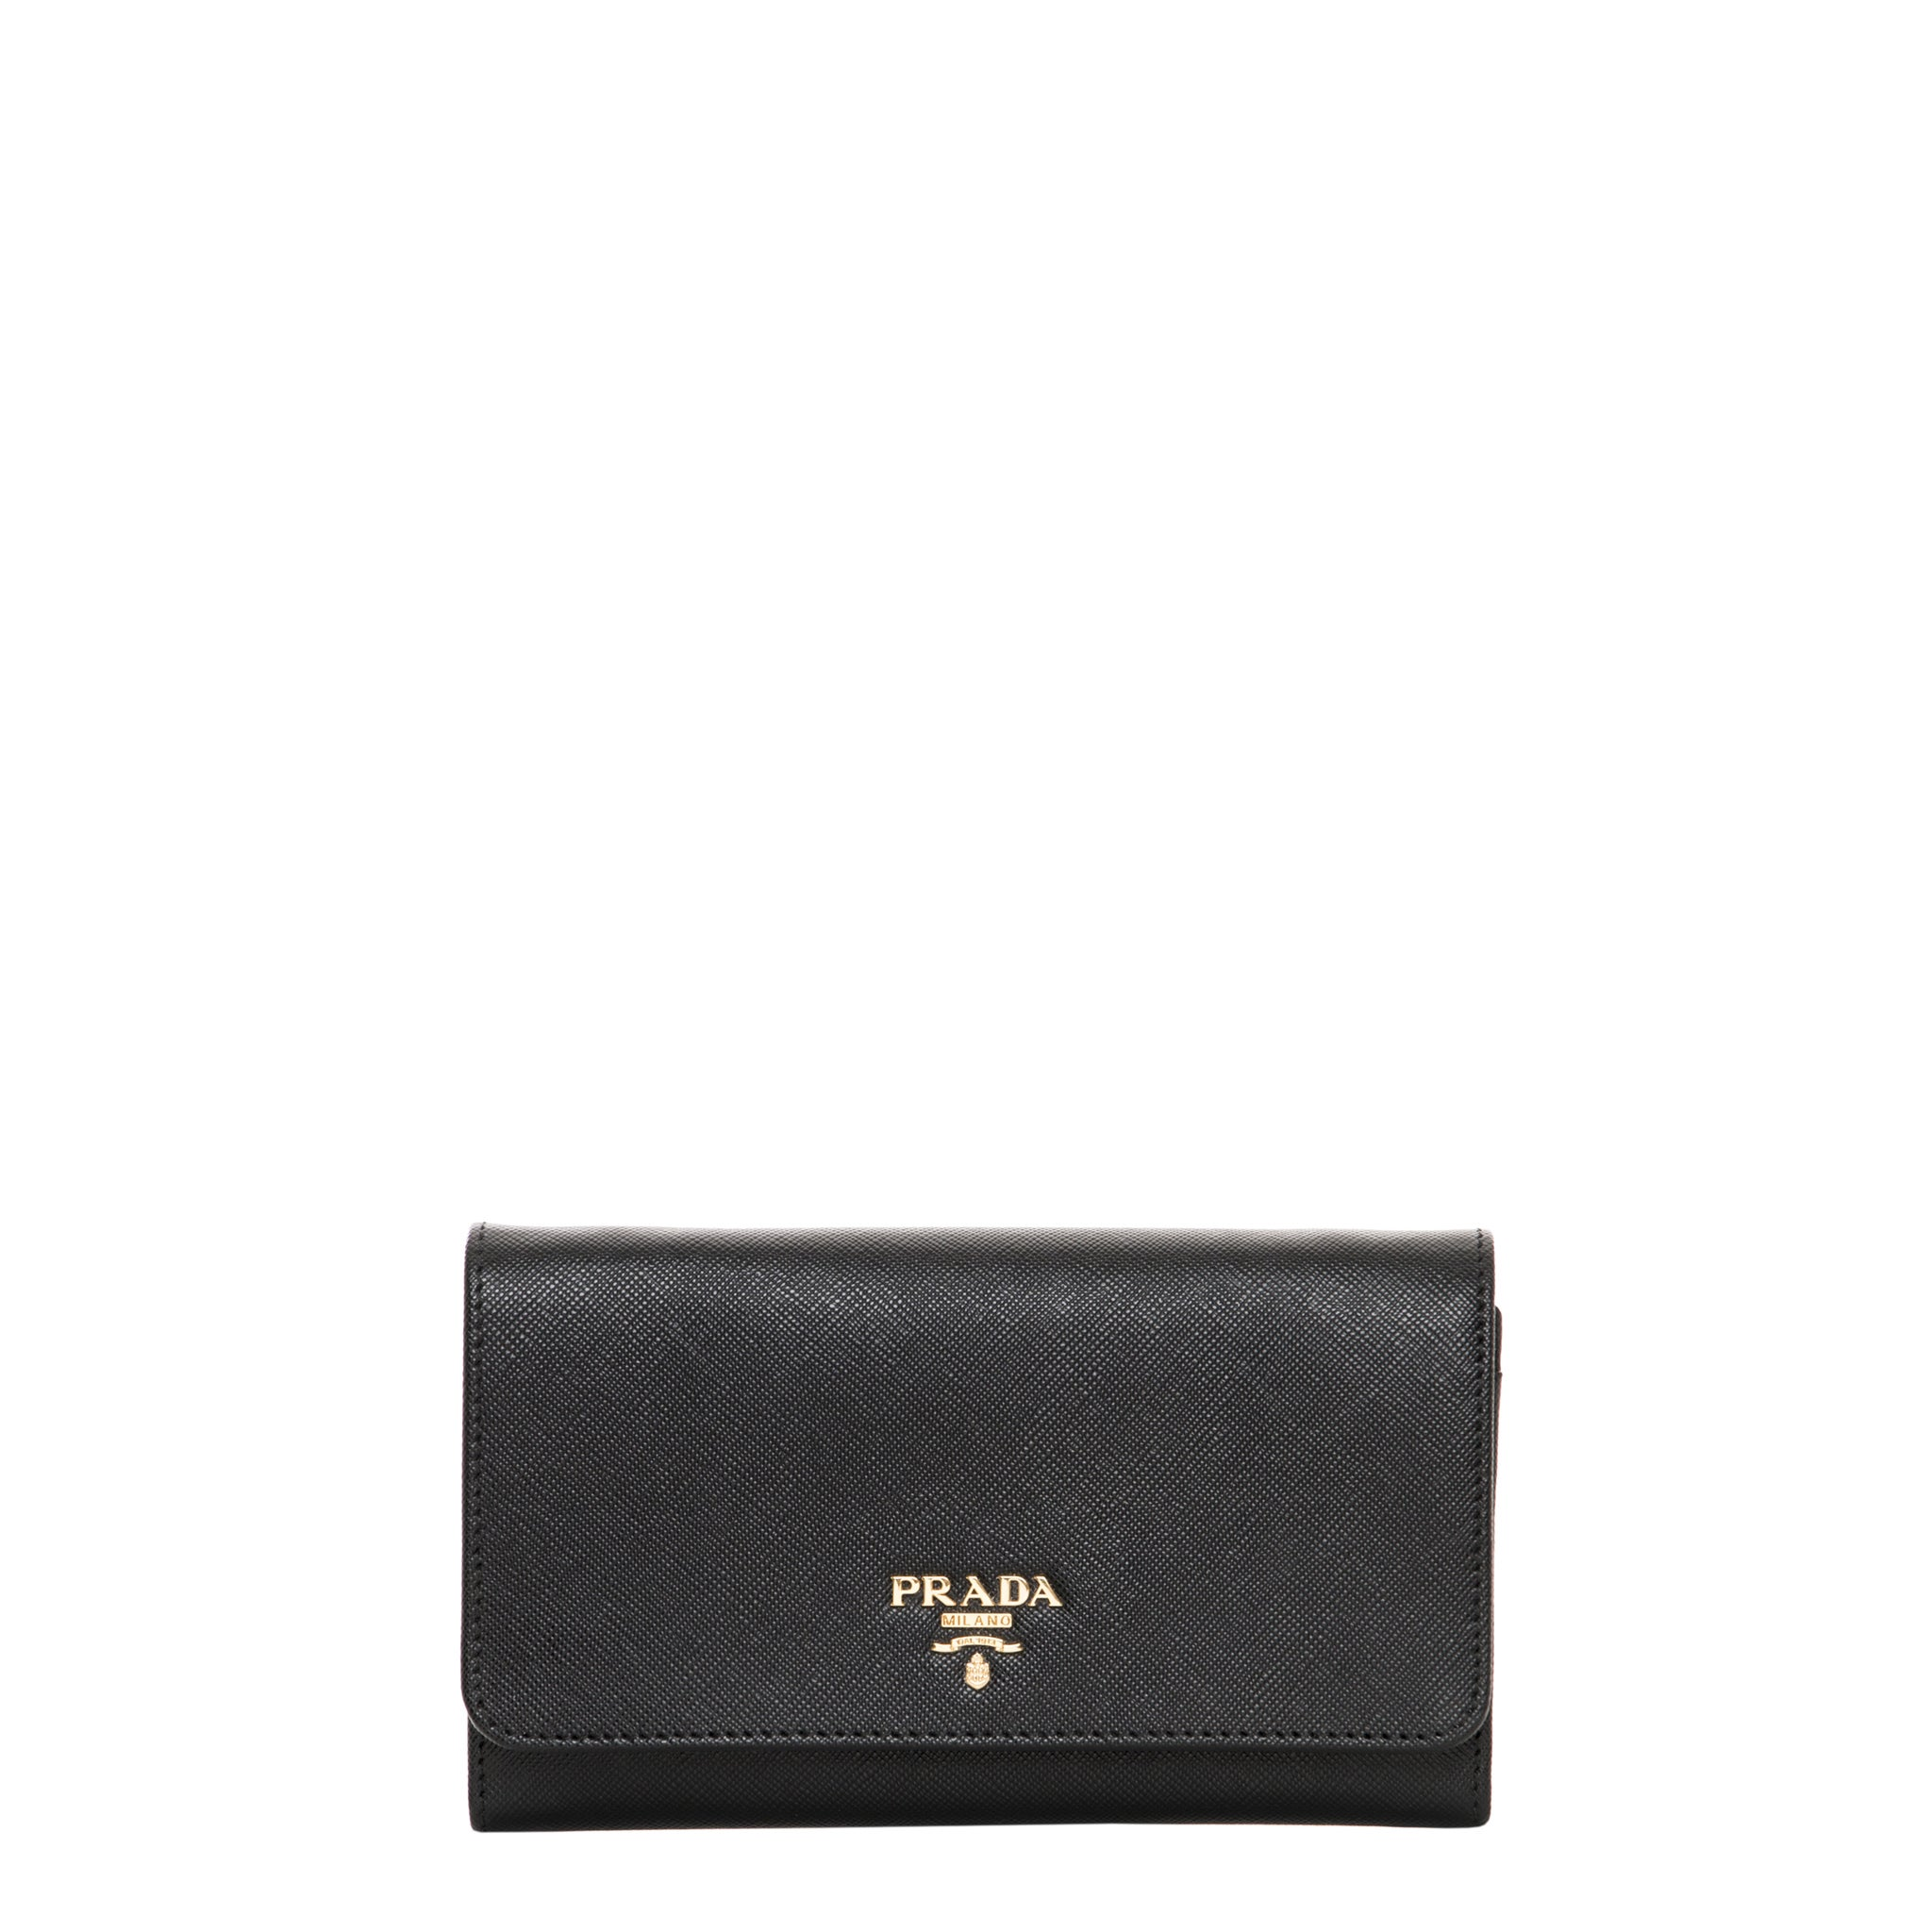 1342d203398b62 Shop Prada Saffiano Leather Flap Wallet with Strap - Free Shipping Today -  Overstock - 10116733